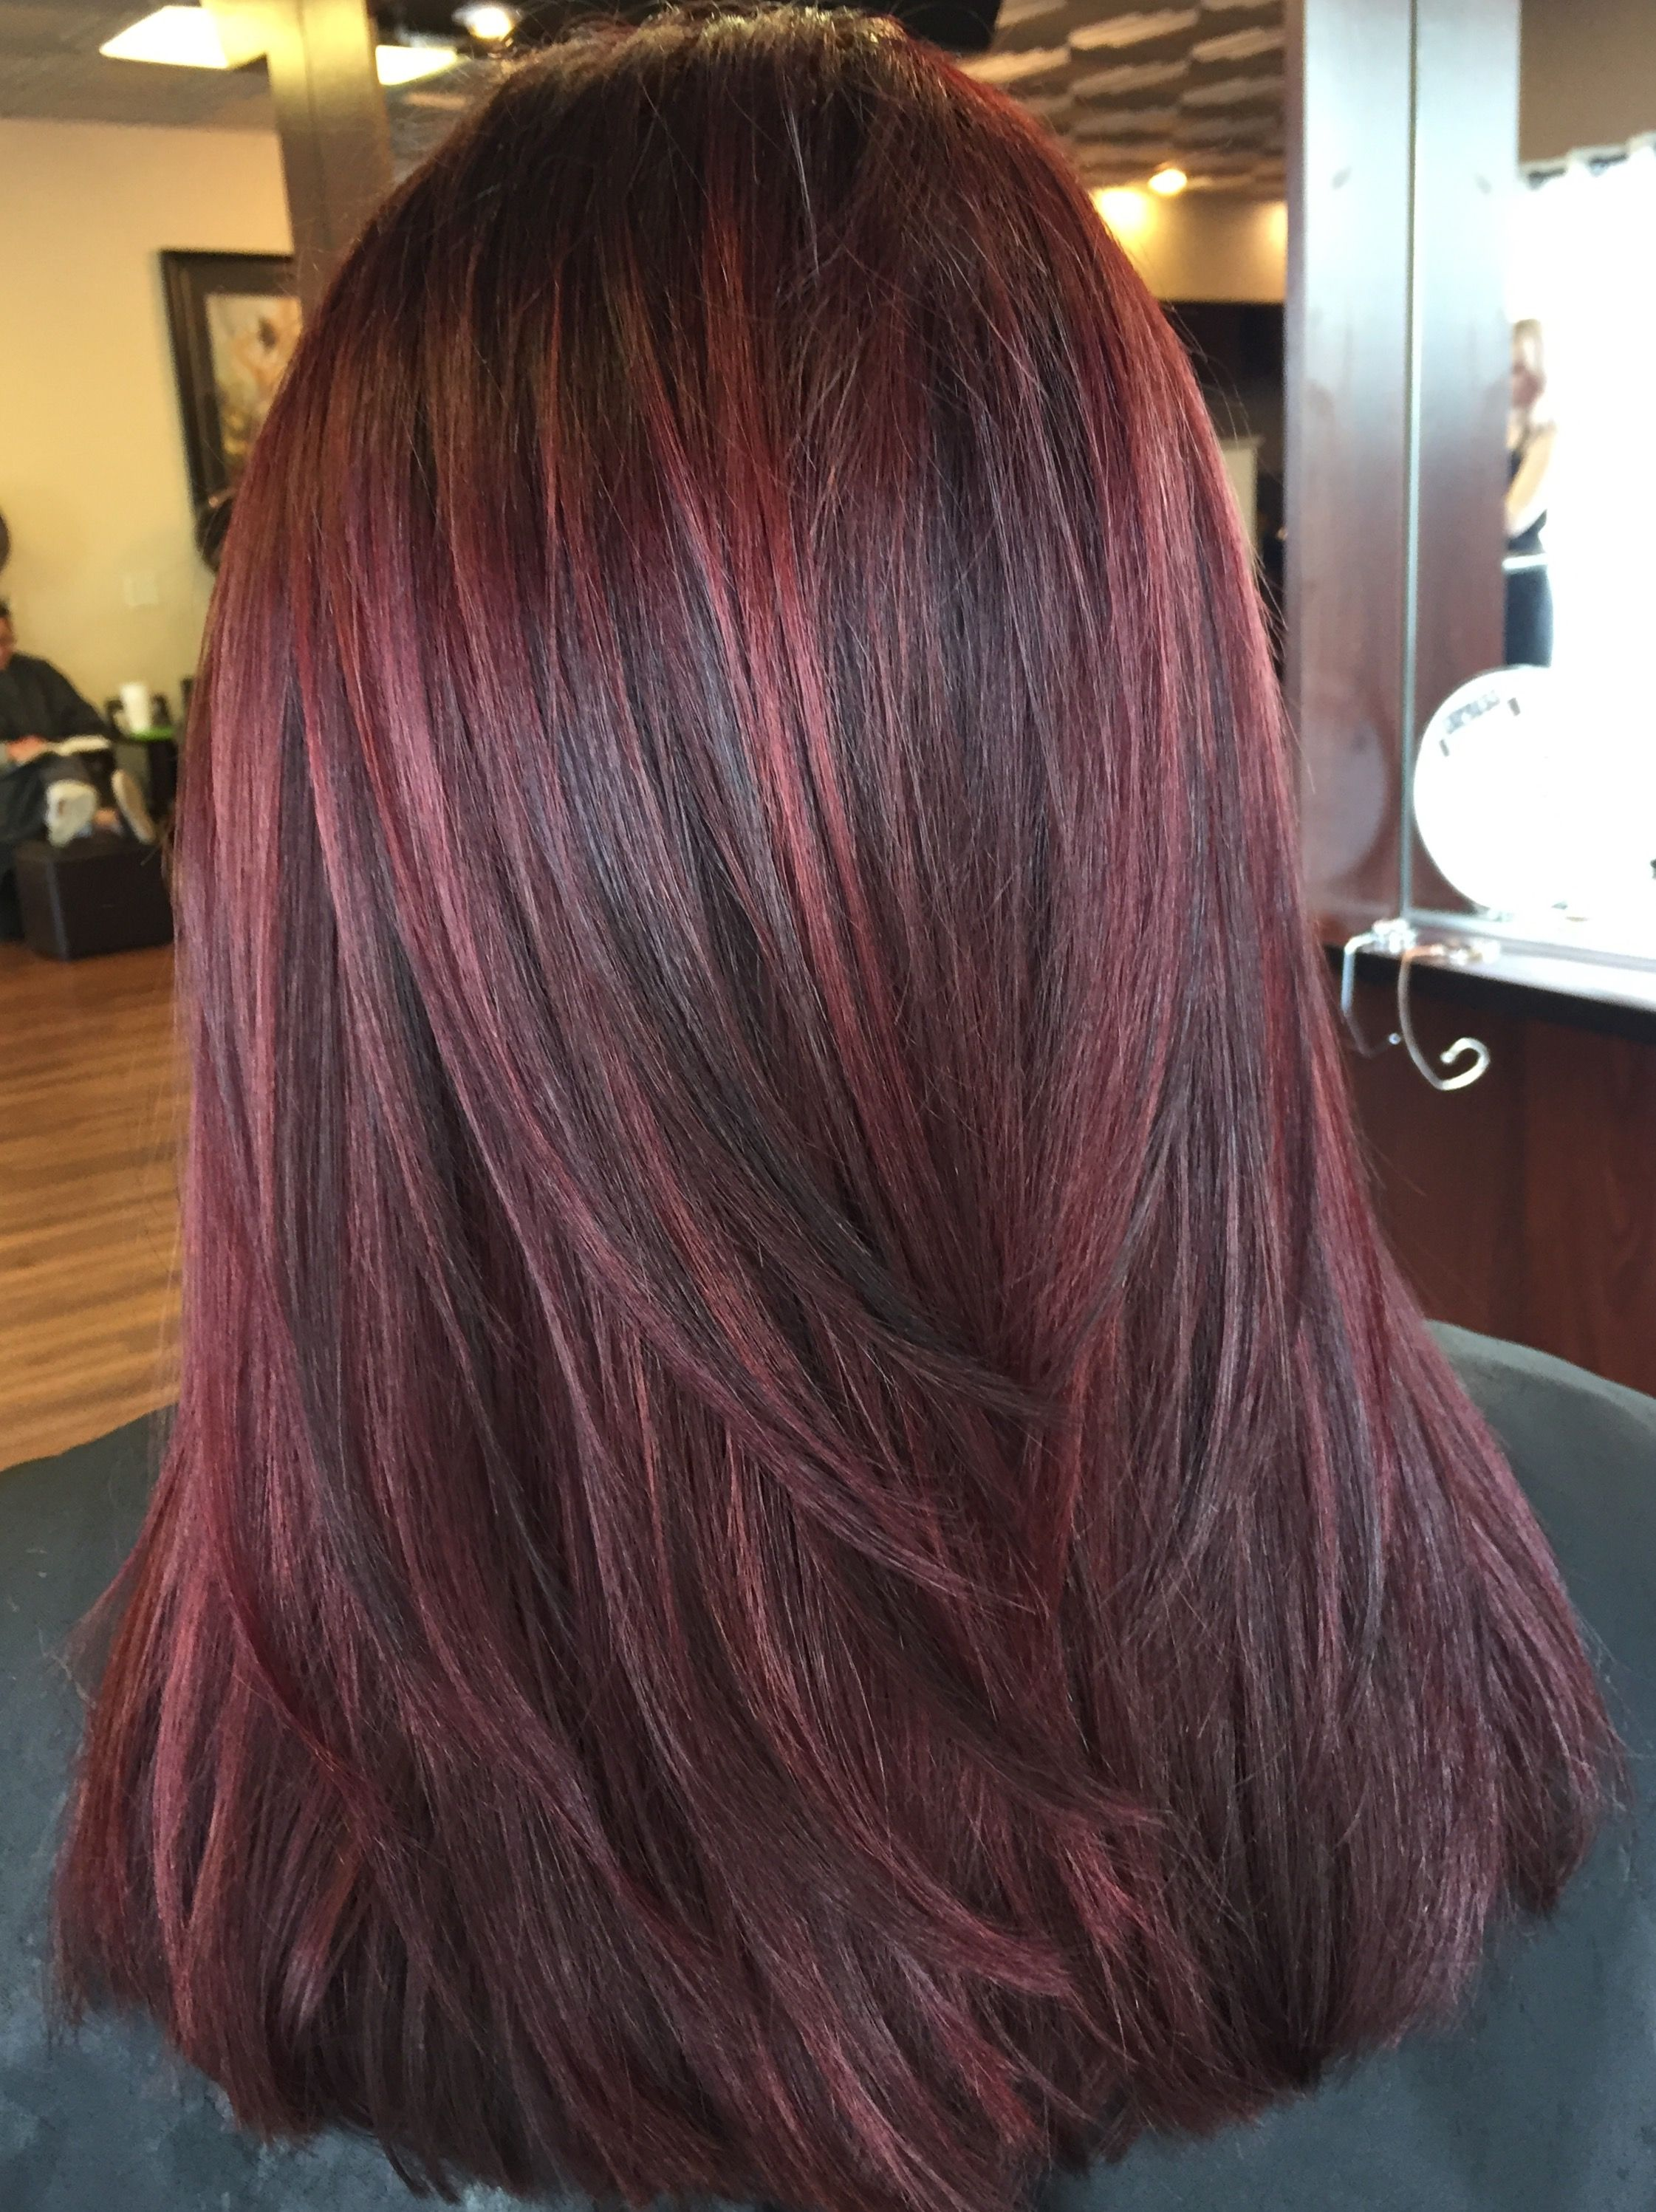 Reds Lowlights Dimensional Red Red Highlights In Brown Hair Hair Color Burgundy Red Brown Hair